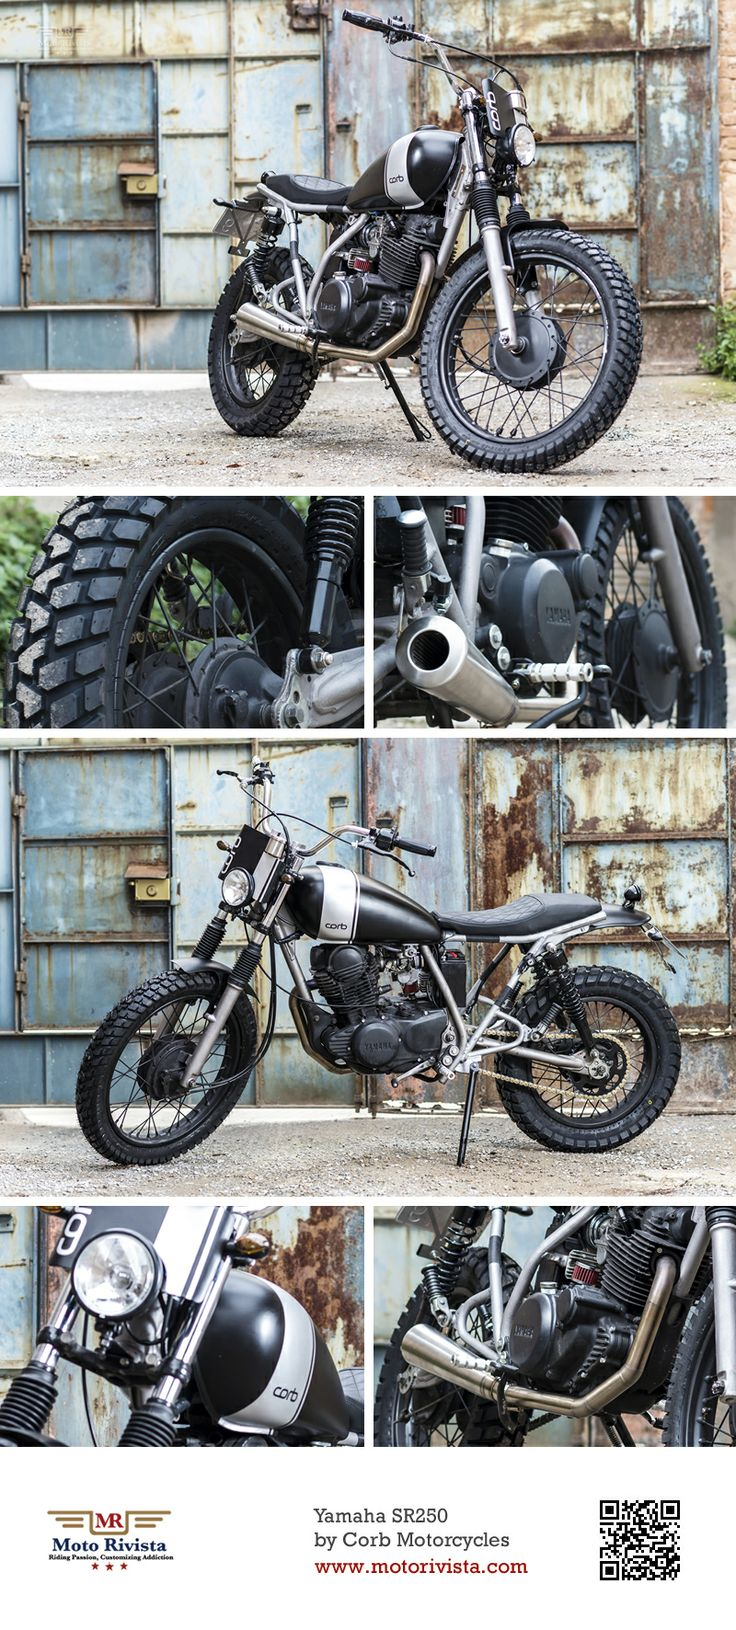 Yamaha Xs Special as well B F D A D Ab F Enduro Scrambler furthermore Yamaha Xs Midnight Special likewise Honda Cb K Cb Cb Runs And Drives Good Tires Looks Lgw in addition Honda Cb K Cb Cb Runs And Drives Good Tires Looks Lgw. on yamaha xs1100 special specs